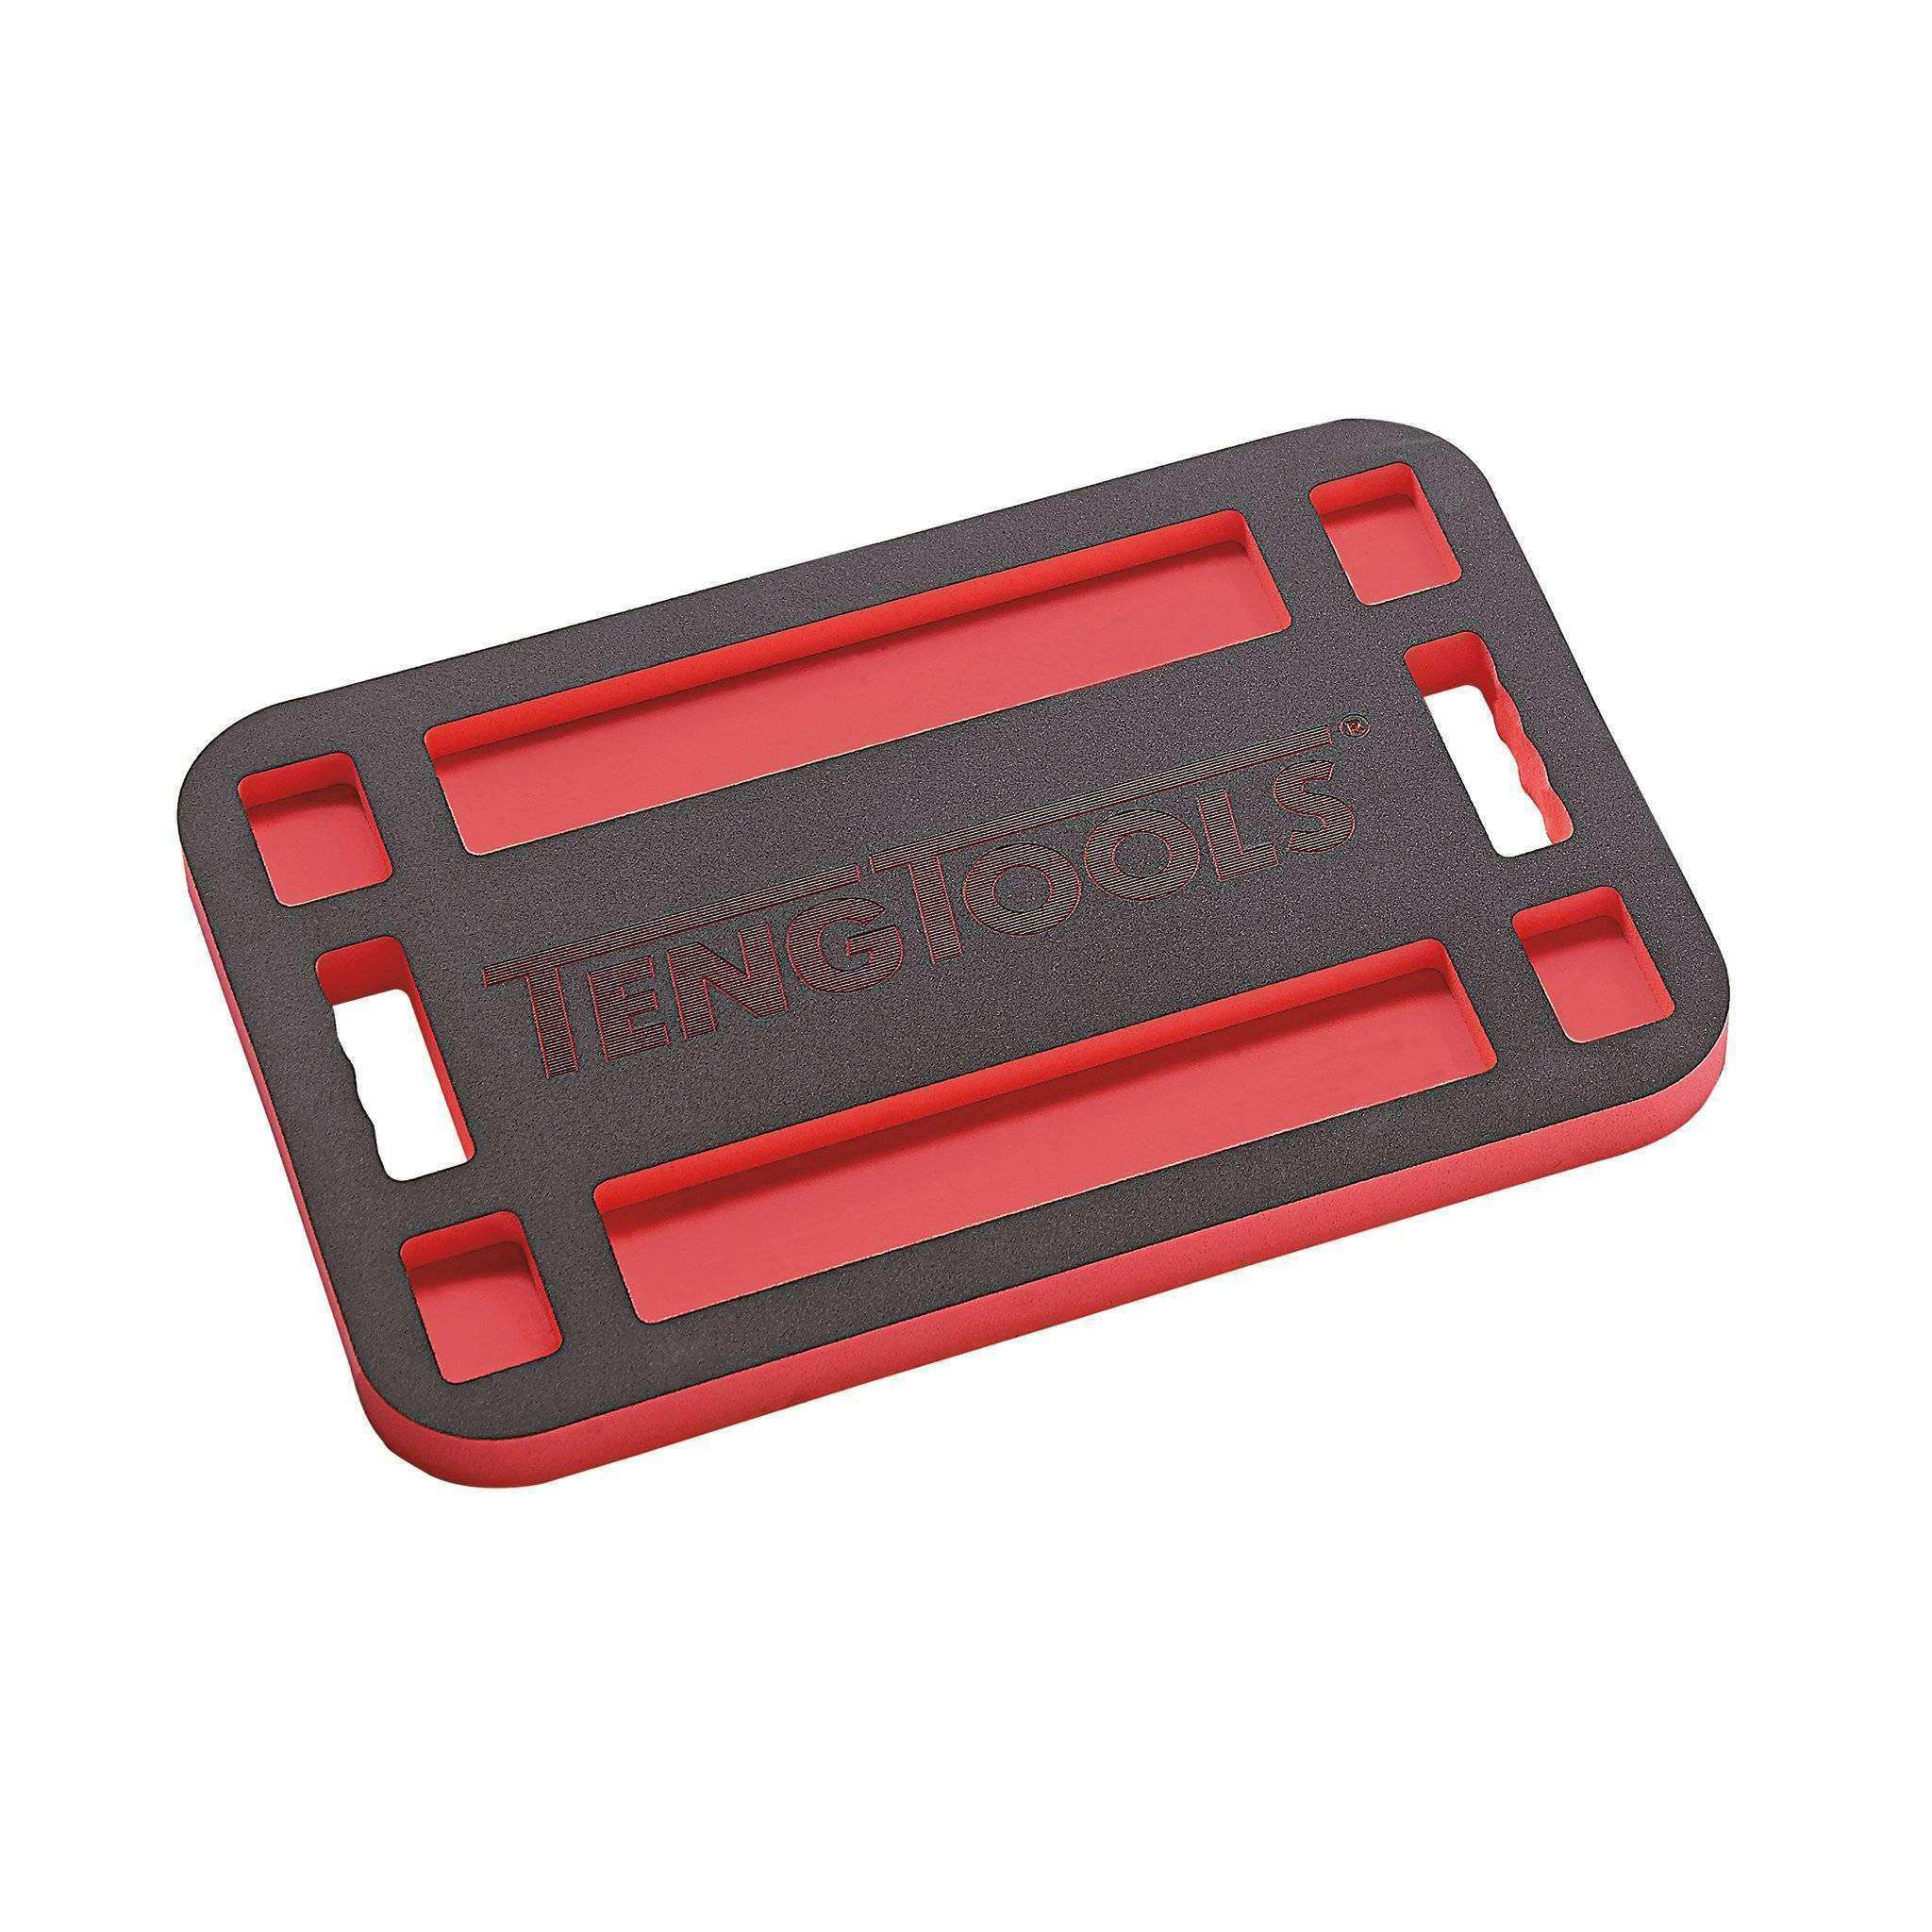 Teng Tools KP03 EVA Kneeling Pad With Storage - Teng Tools USA